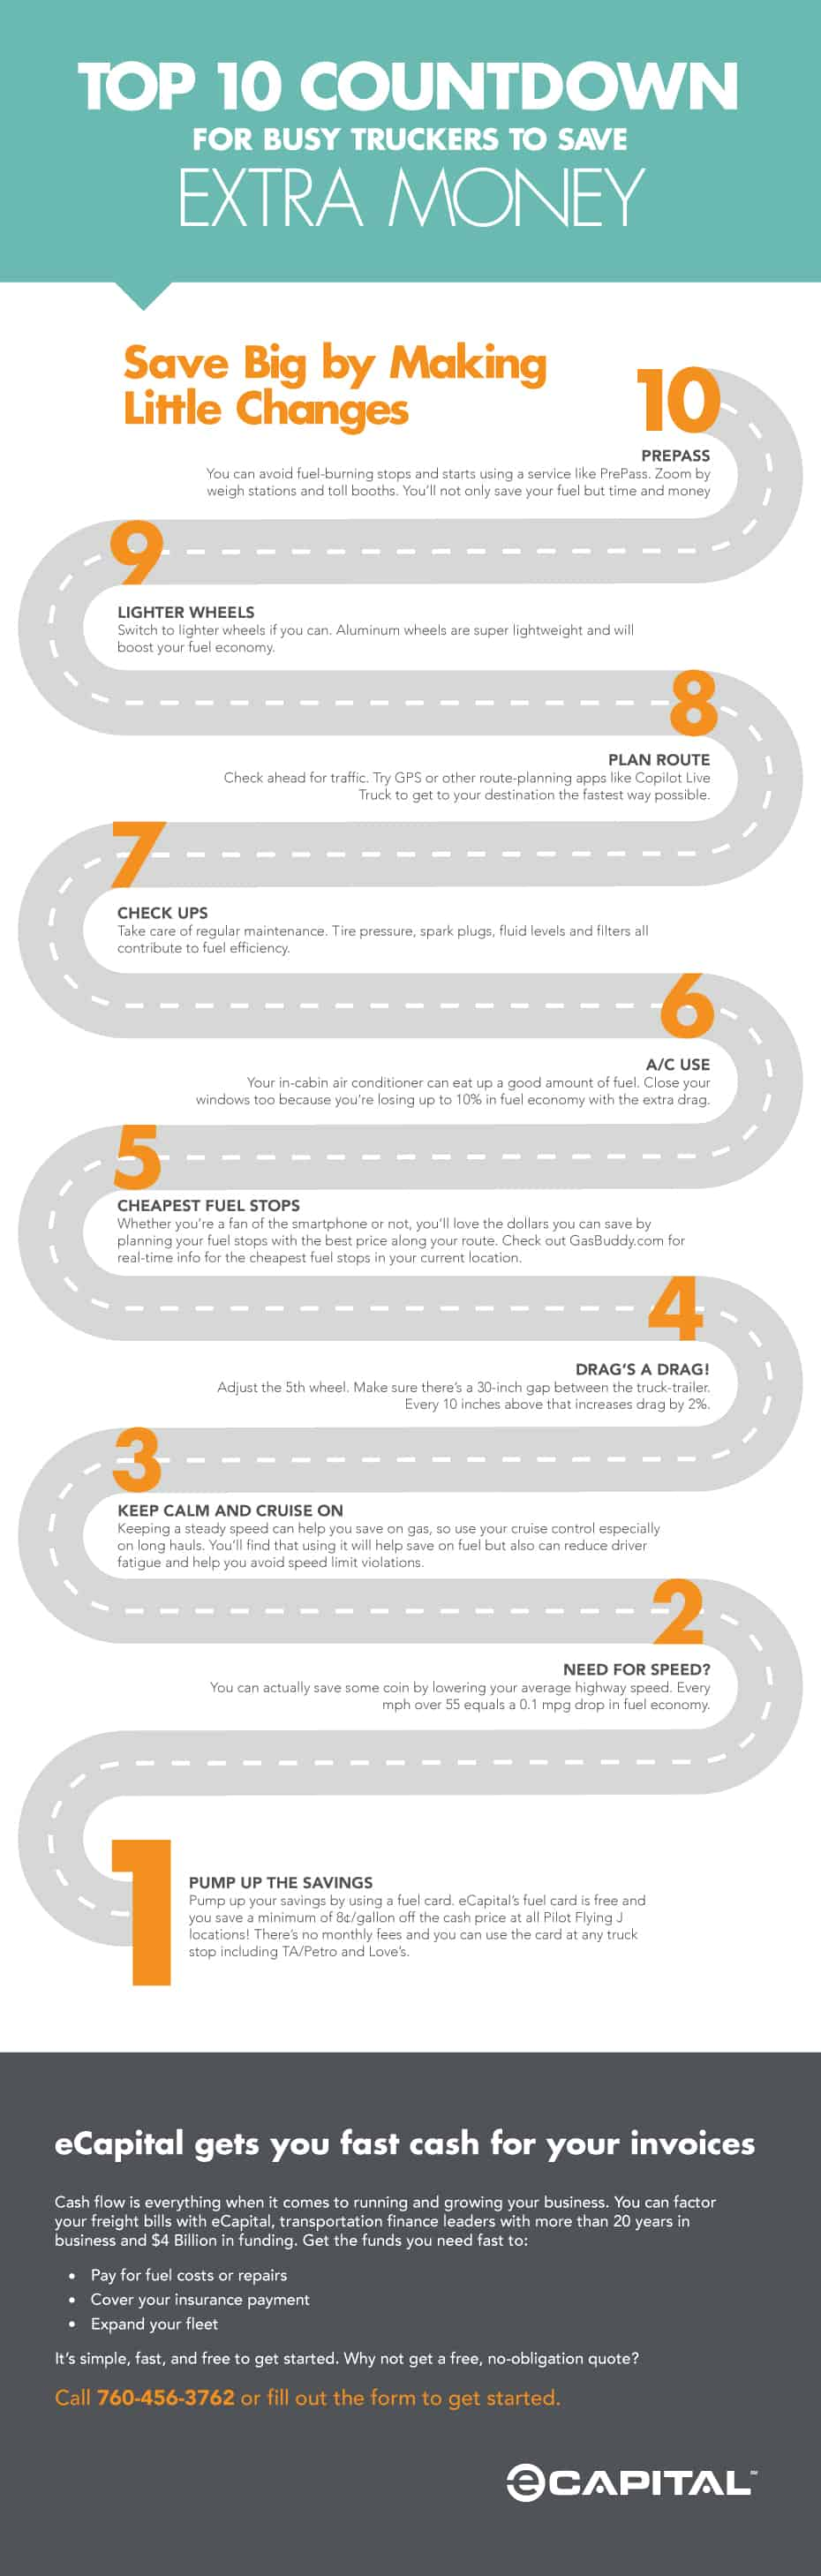 Top 10 Countdown for Busy Truckers Infographic